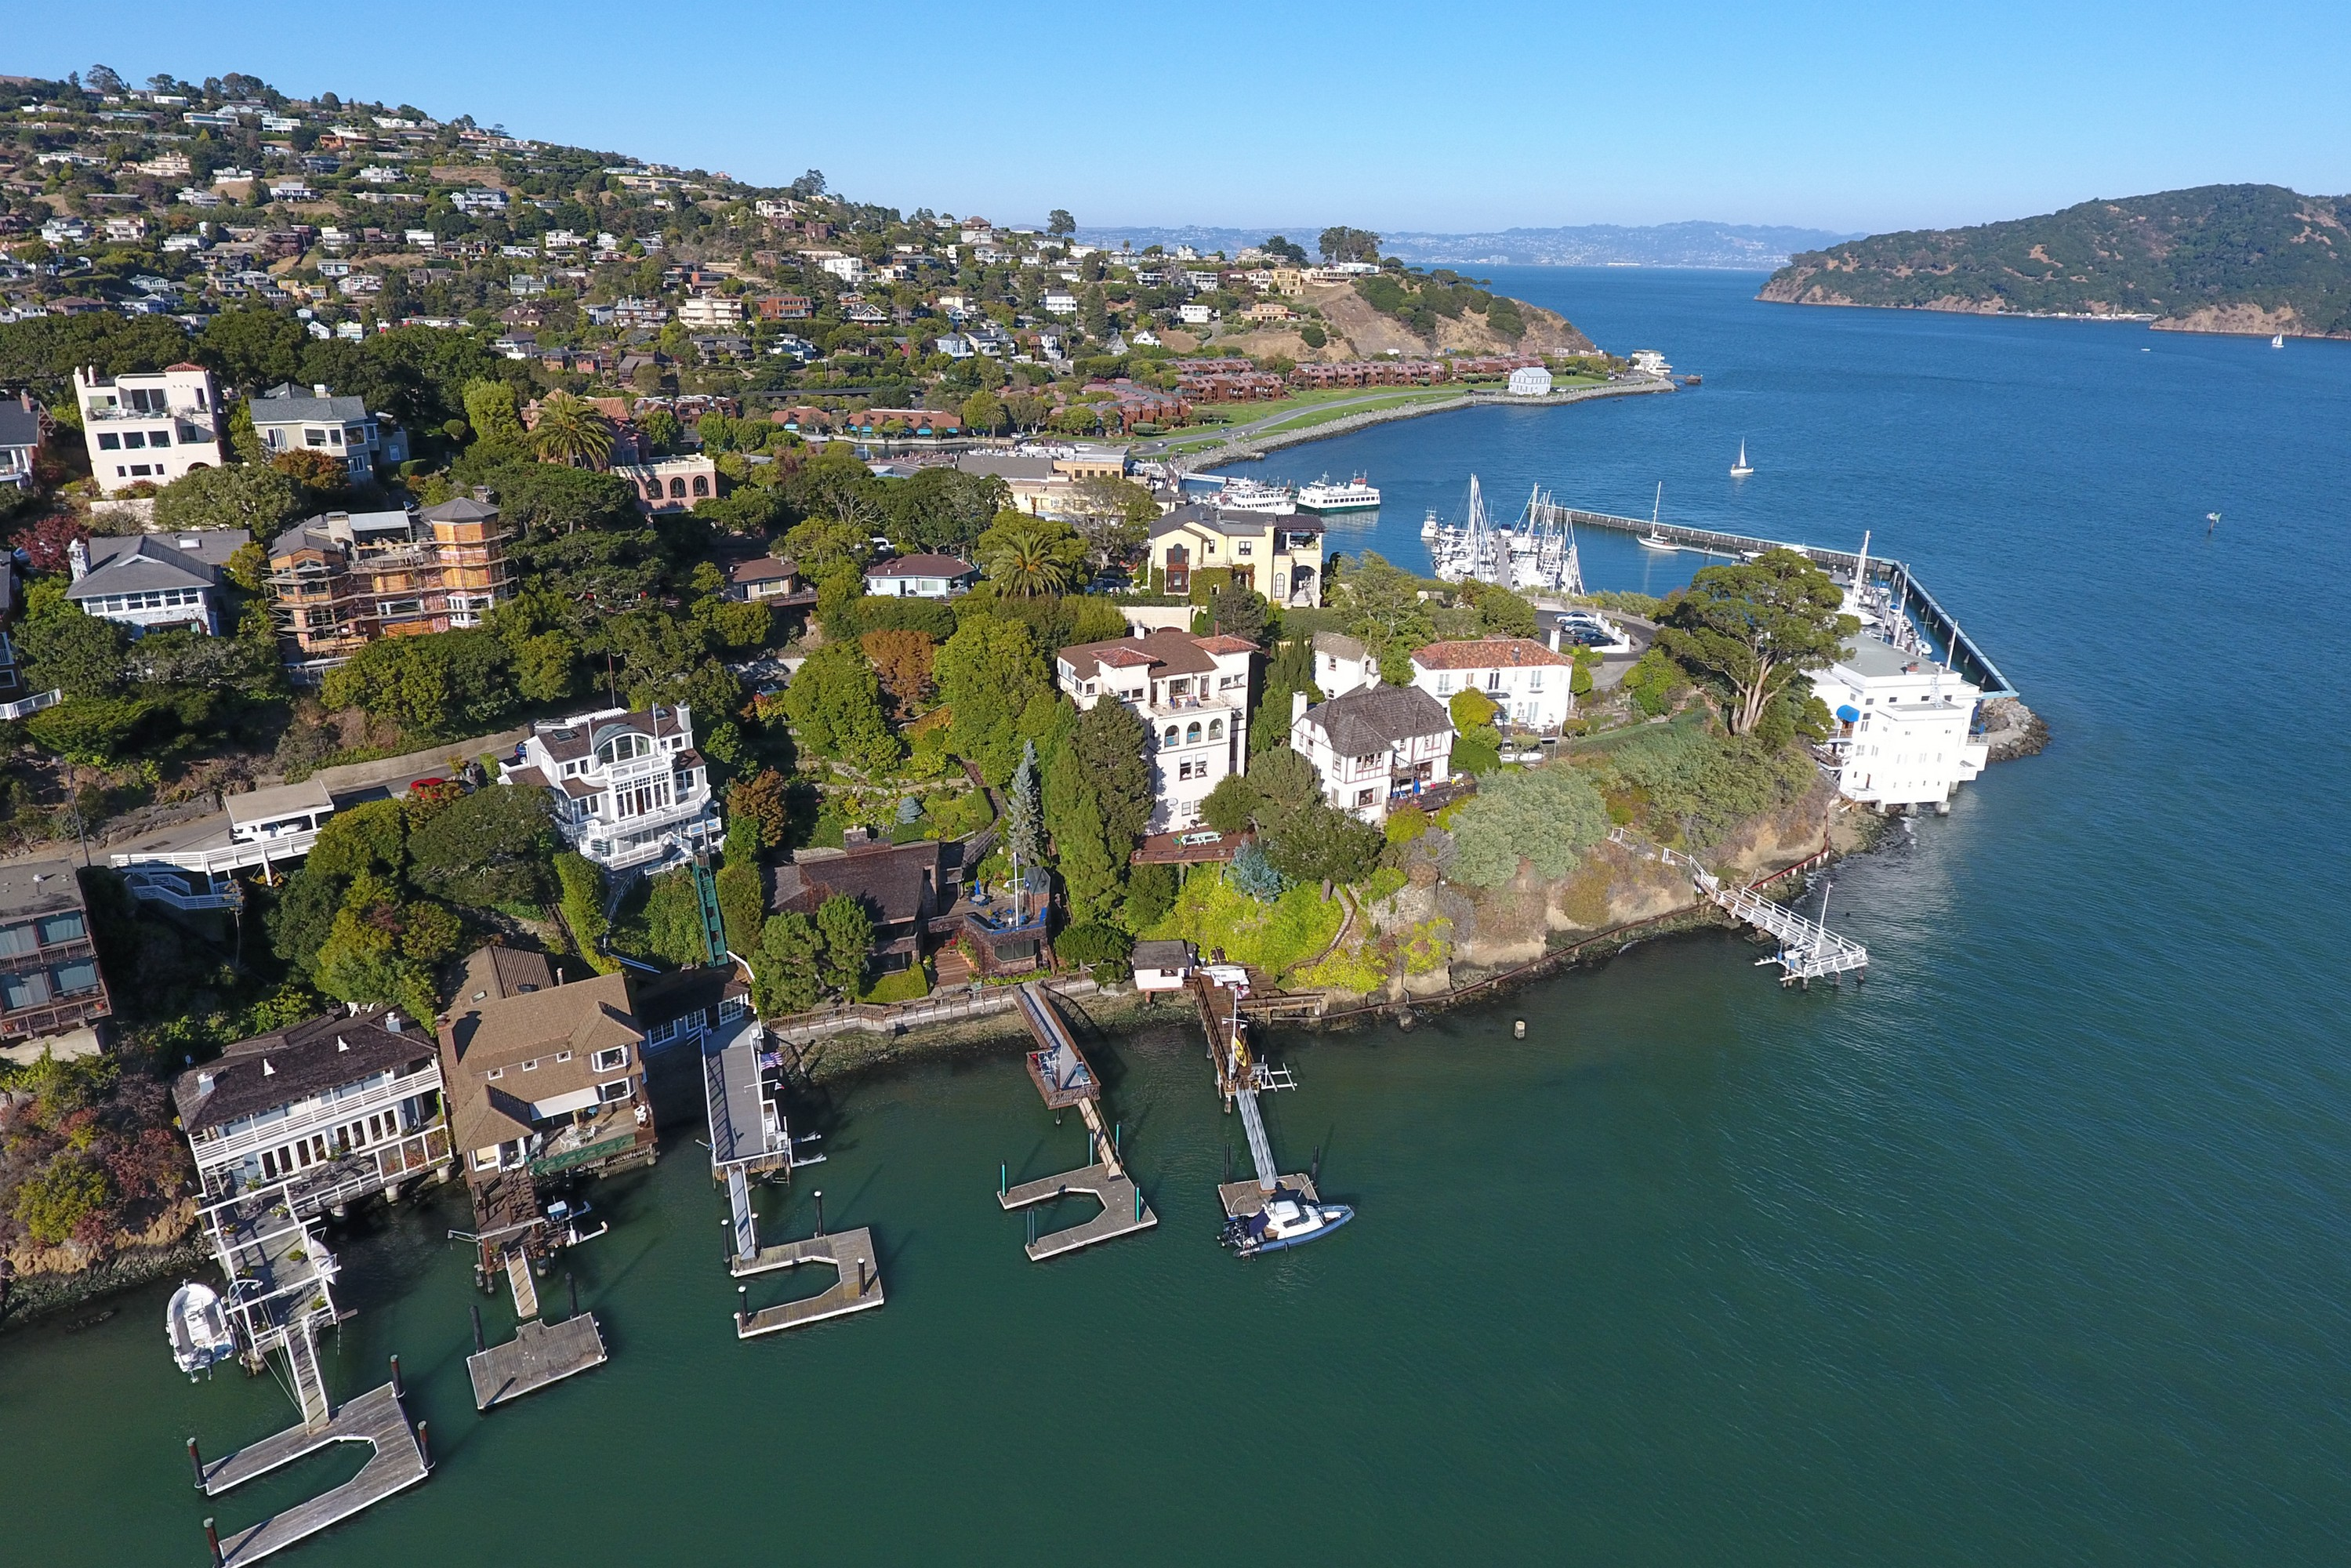 Casa Unifamiliar por un Venta en Prime Waterfront Home with Boat Dock and Beach House 71 Bellevue Avenue Belvedere, California 94920 Estados Unidos